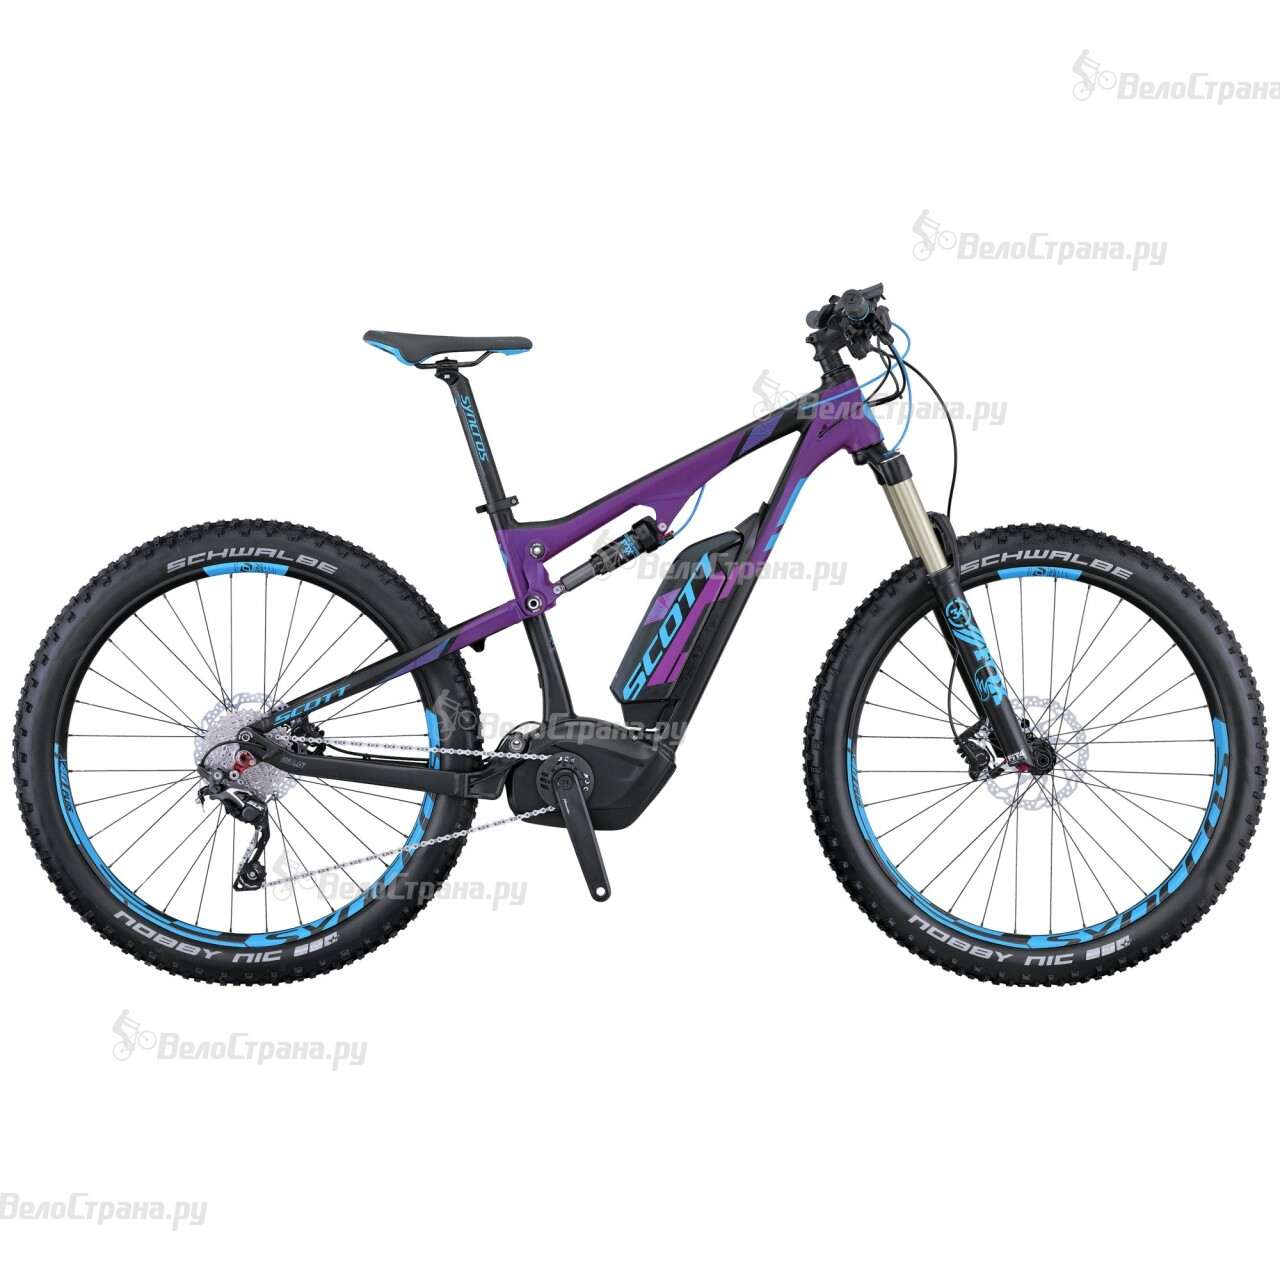 Велосипед Scott E-Contessa Genius 720 Plus (2016) велосипед scott contessa genius 700 2015